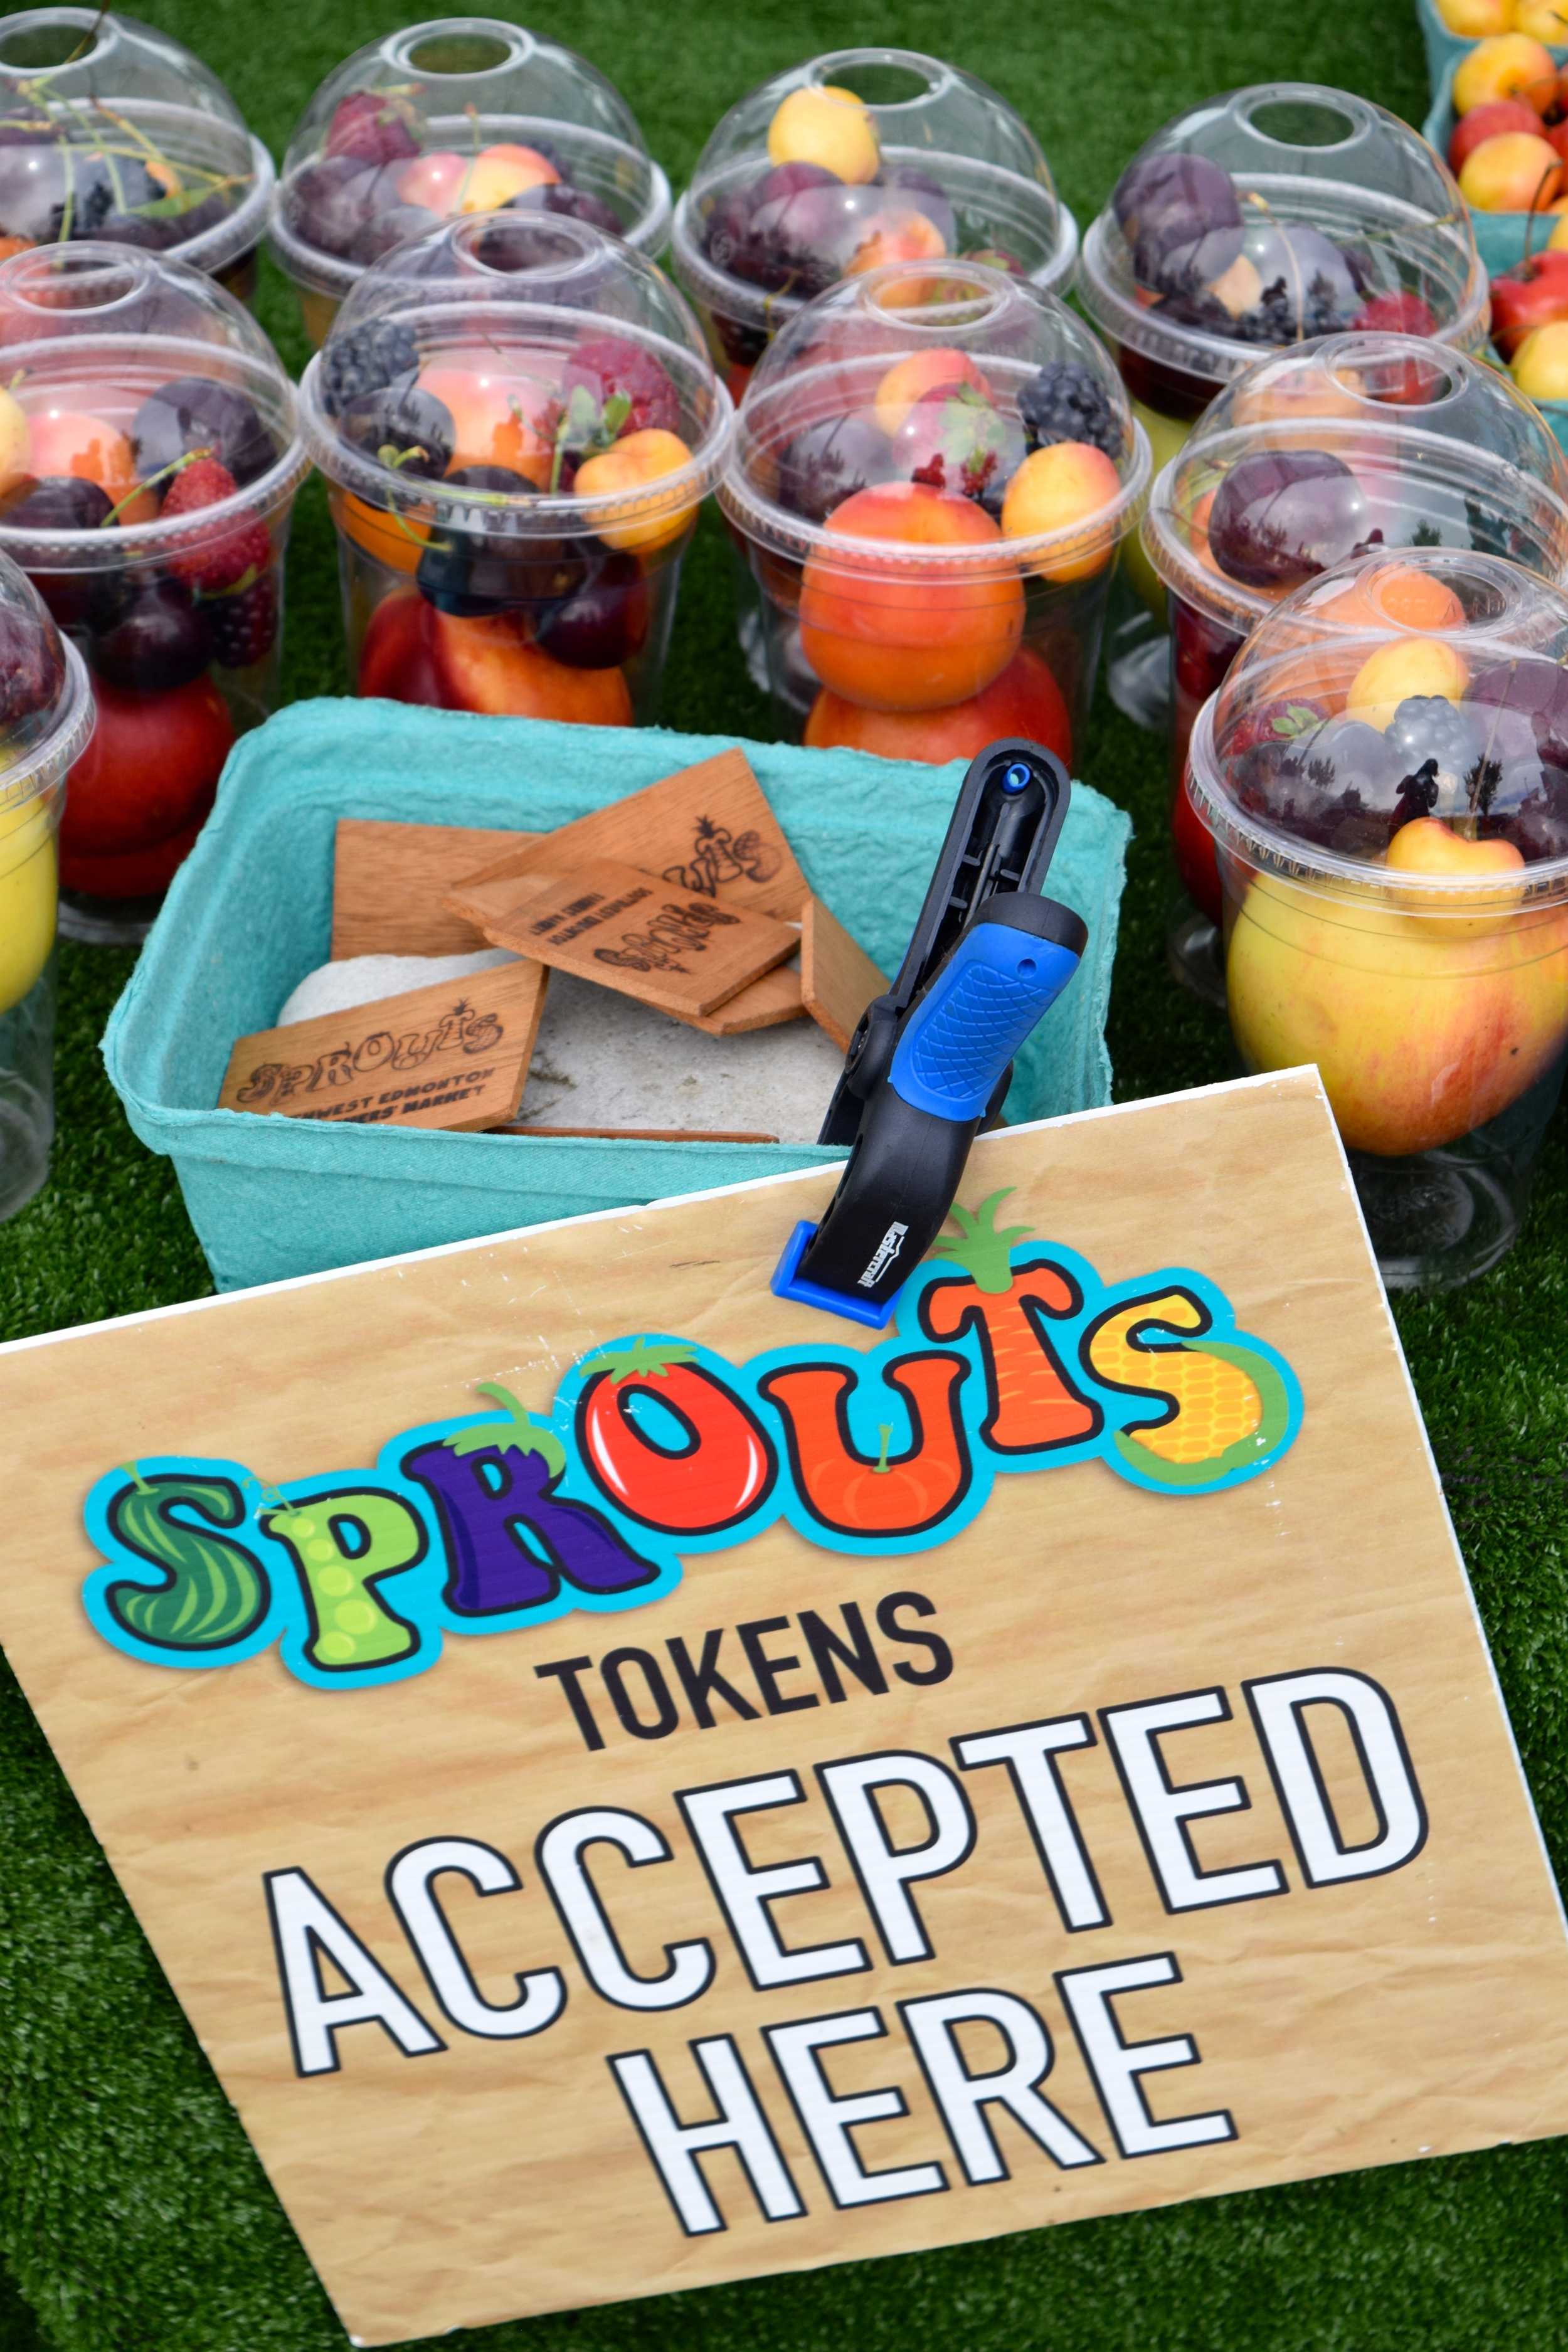 This week's photo of the week features the most-loved signs at the market! Our little Sprouts look out for these brightly coloured signs for places where they can spend their Sprouts tokens... Often on pre-made mixed cups of fruits and veg just for kids!